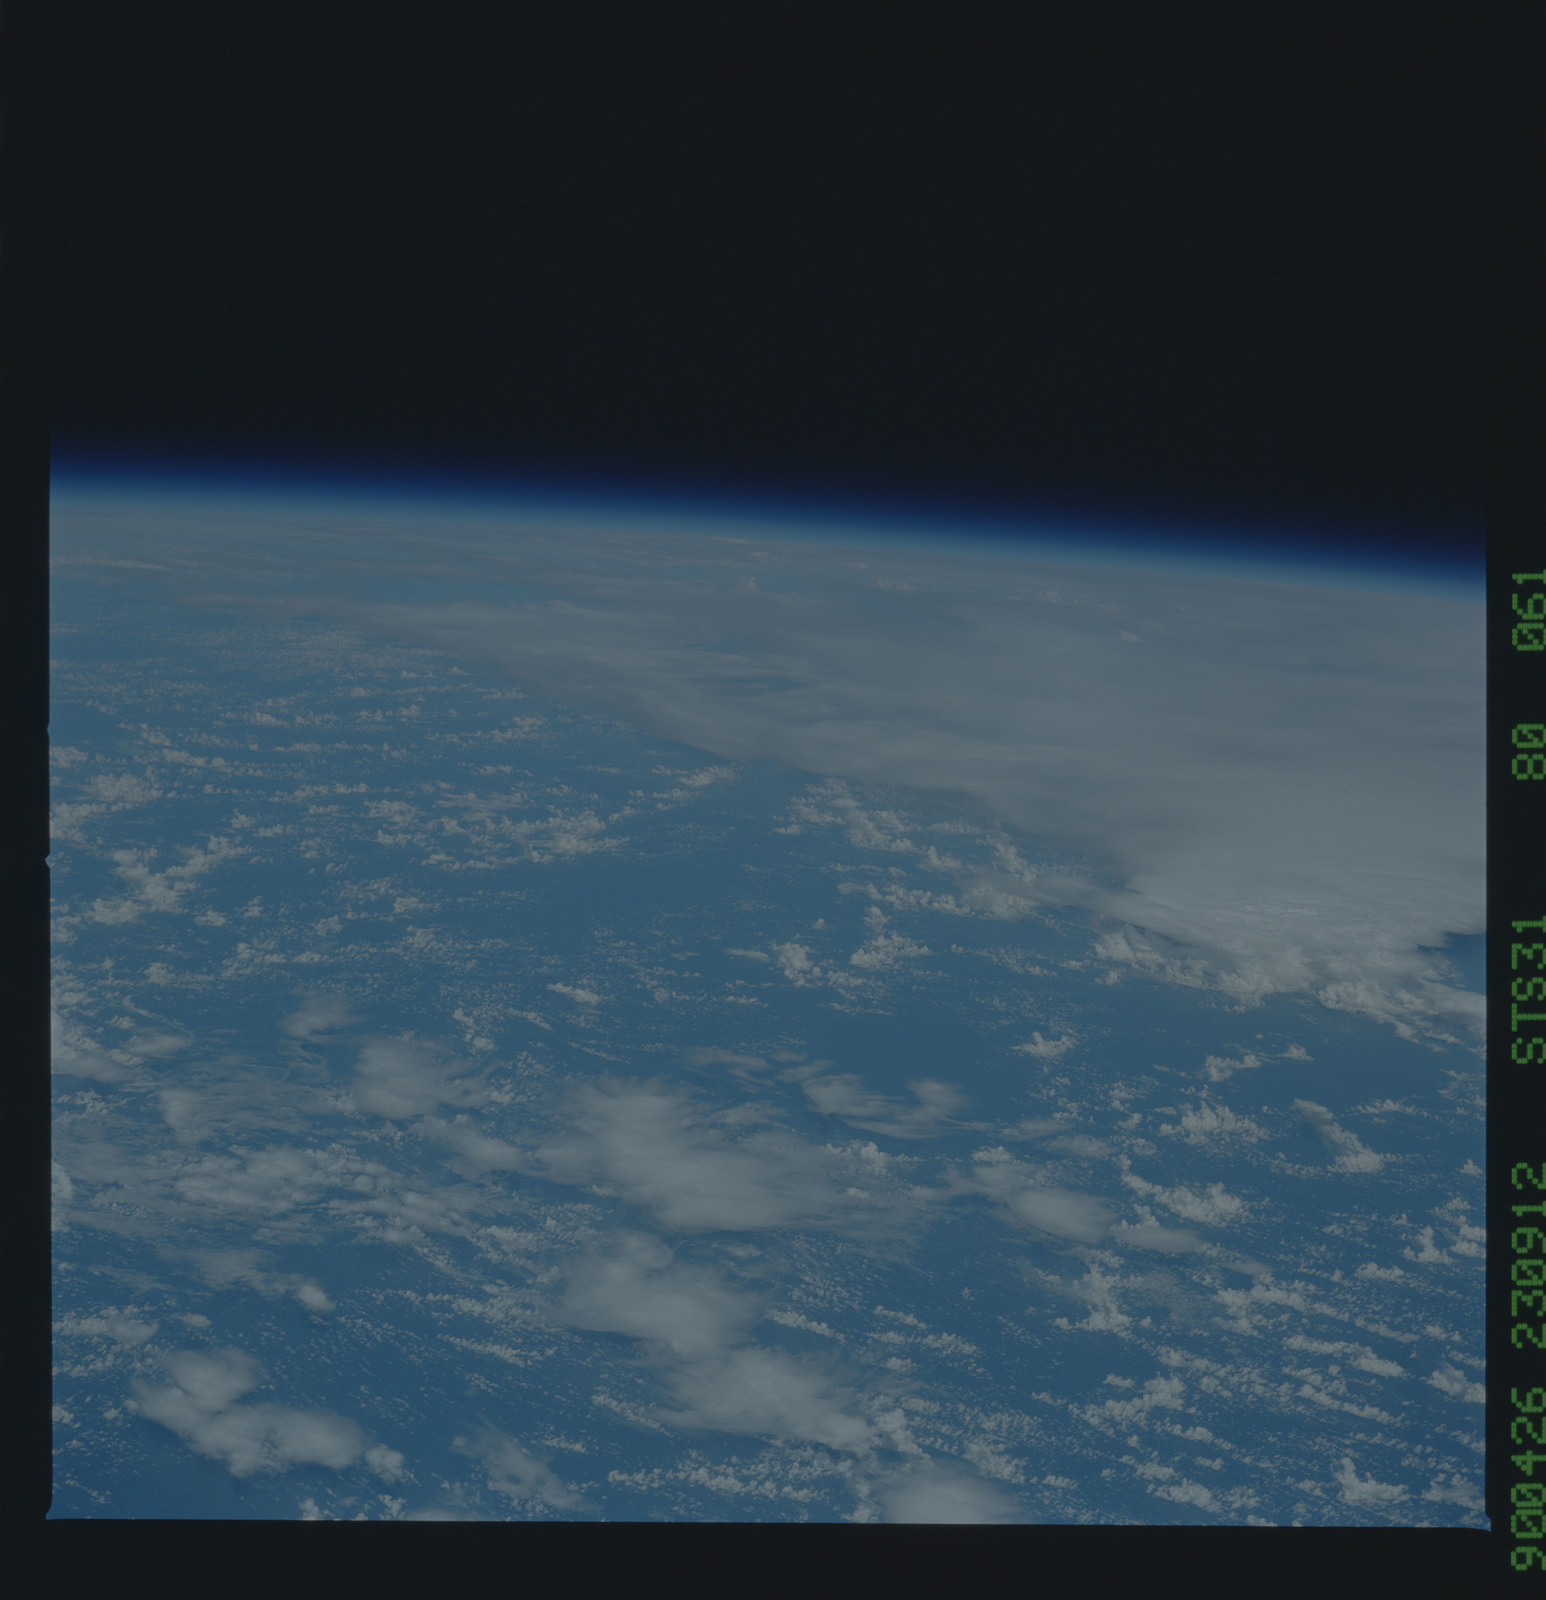 S31-80-061 - STS-031 - STS-31 earth observations